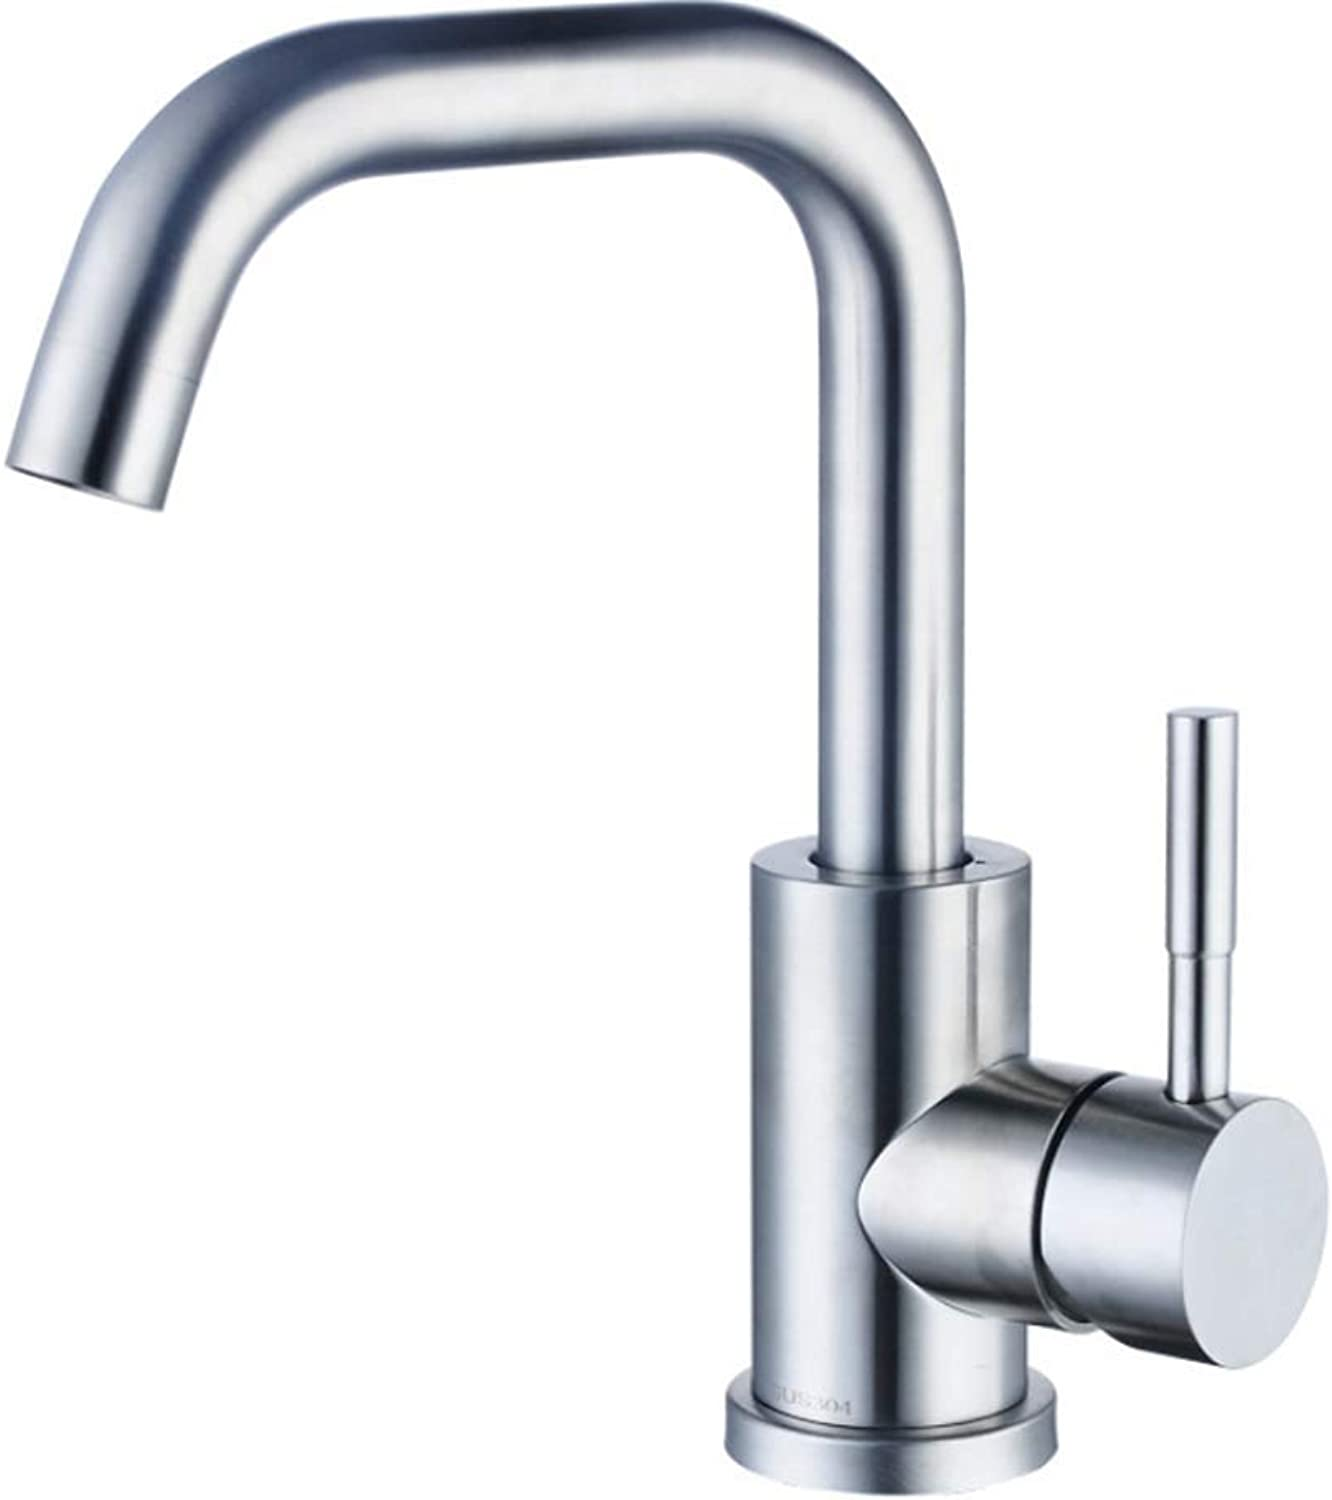 Pull Out The Pull Down Stainless Steelstainless Steel Faucet 304 Washbasin Faucet Kitchen Faucet Hot and Cold Faucet